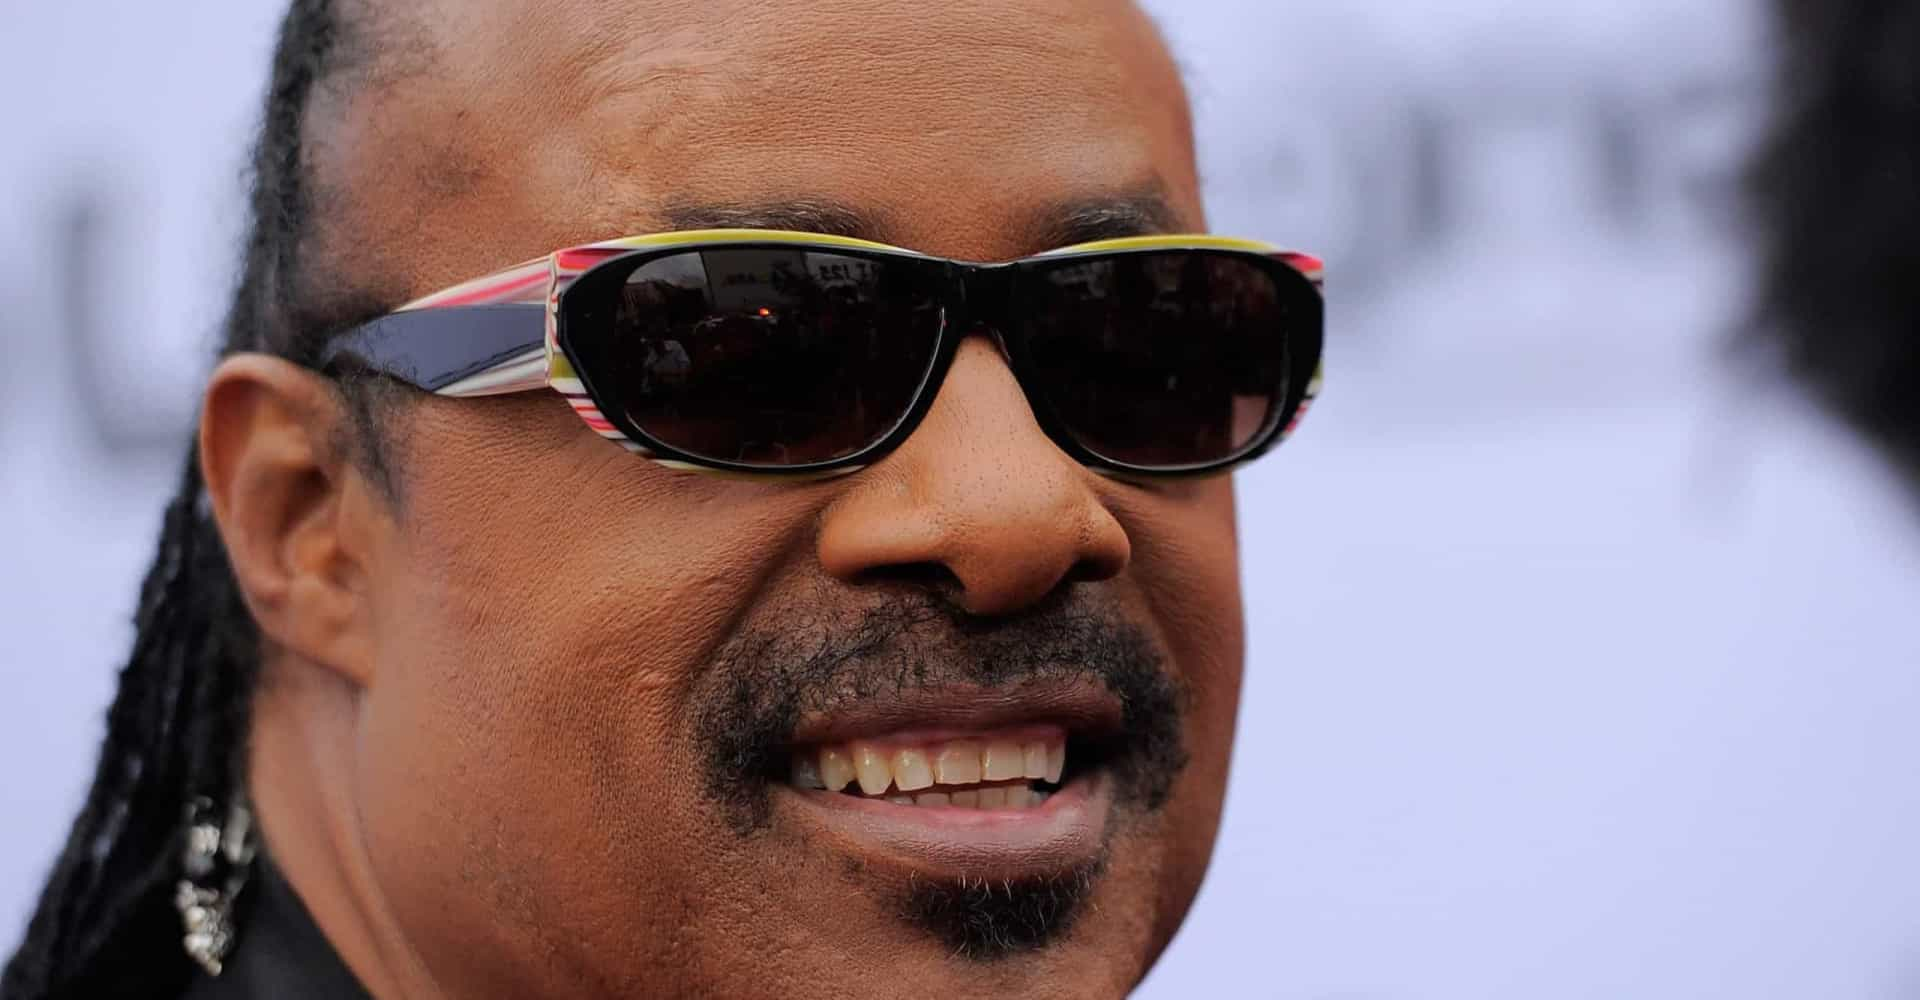 Fantastiset faktat Stevie Wonderista